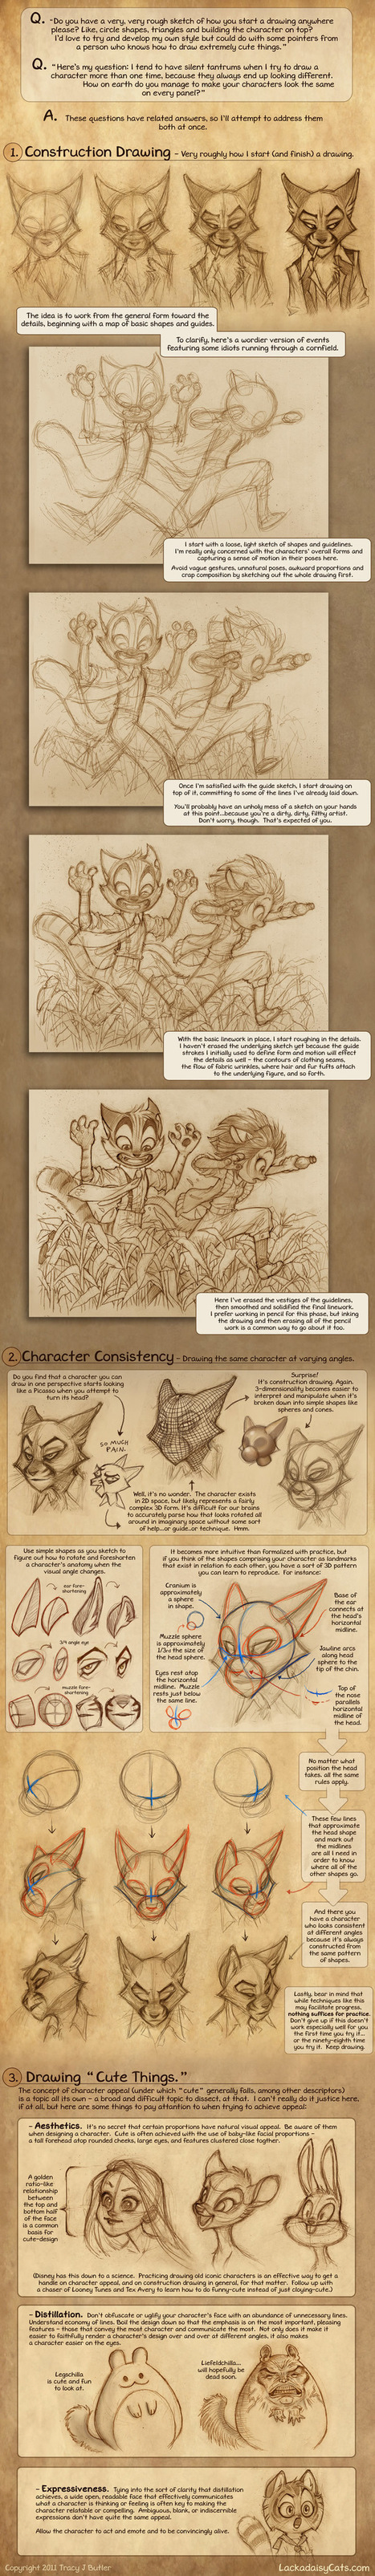 Character Drawing Tutorial | Drawing and Painting Tutorials | Scoop.it